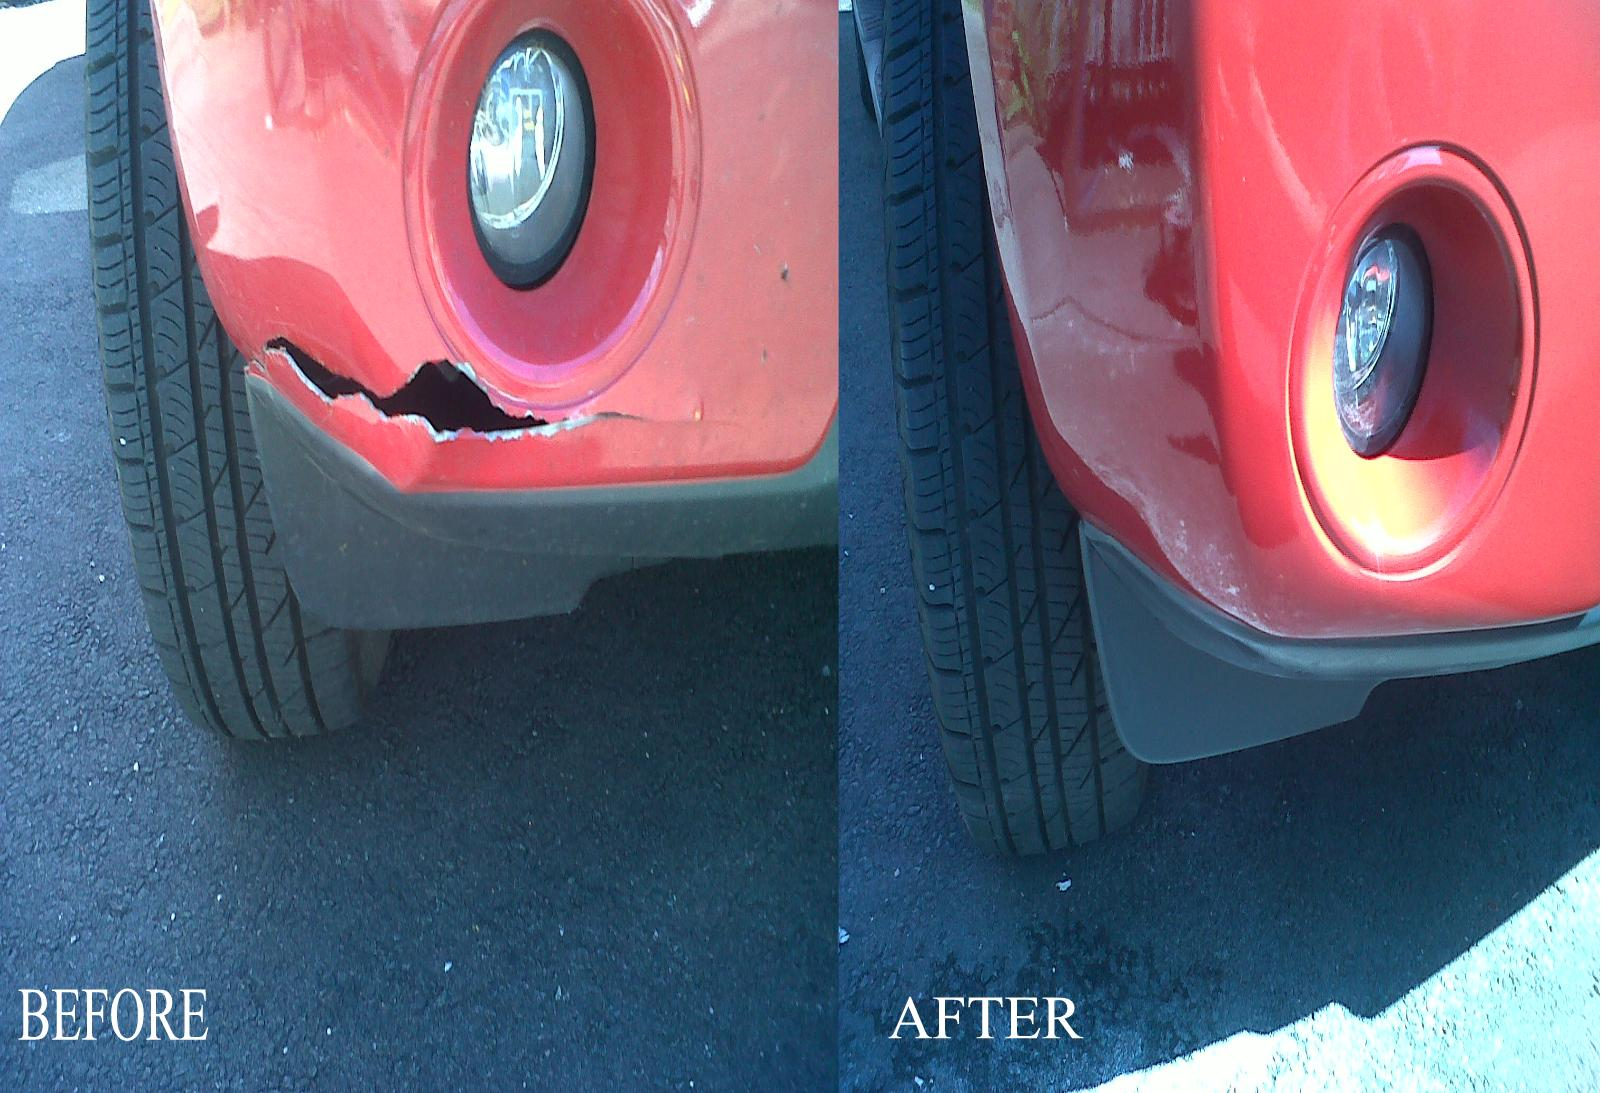 CRACKED SPLIT DENTED BUMPER REPAIRS IN BIRMINGHAM WOLVERHAMPTON SOLIHULL WALSALL TELFORD .